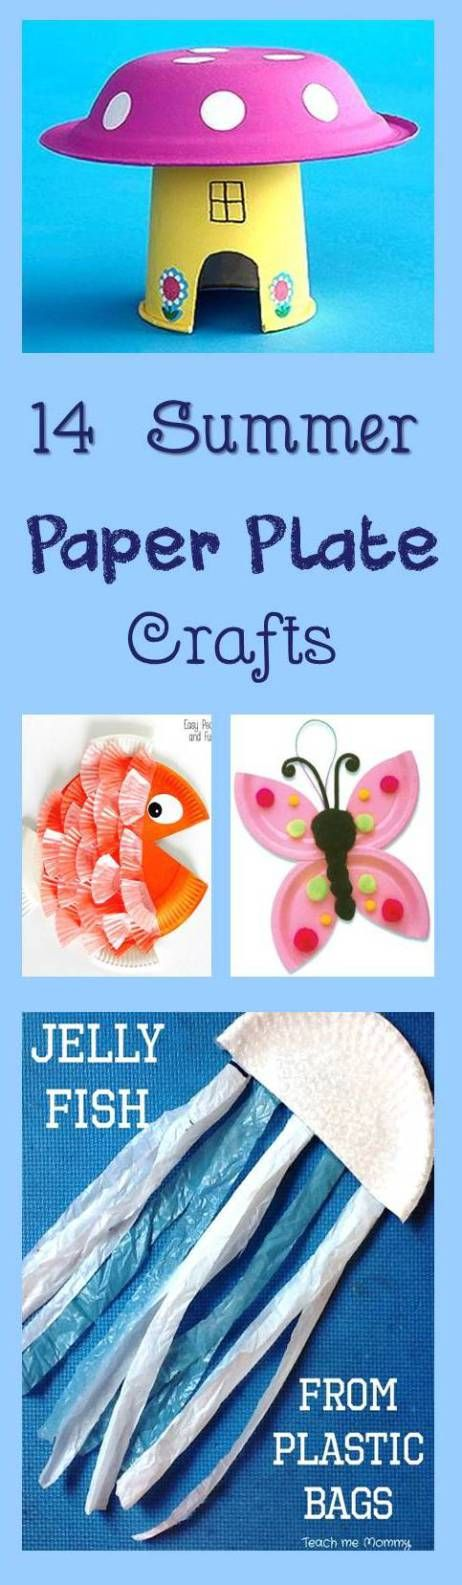 14 Summer paper plate crafts